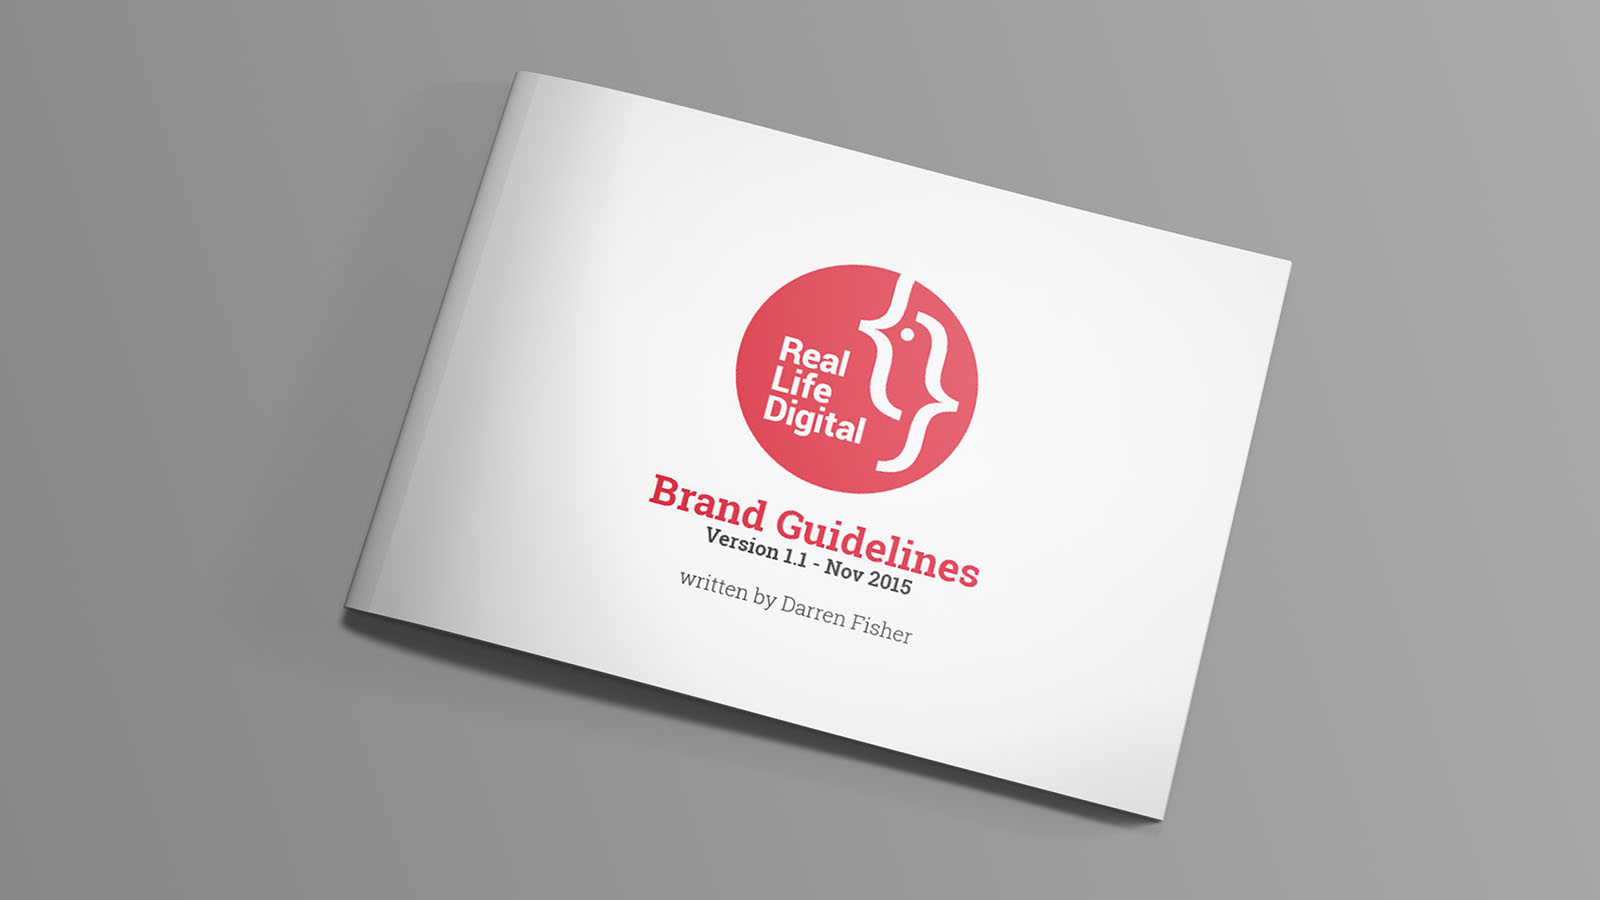 A closed copy of Real Life Digital's branding document showing the cover.